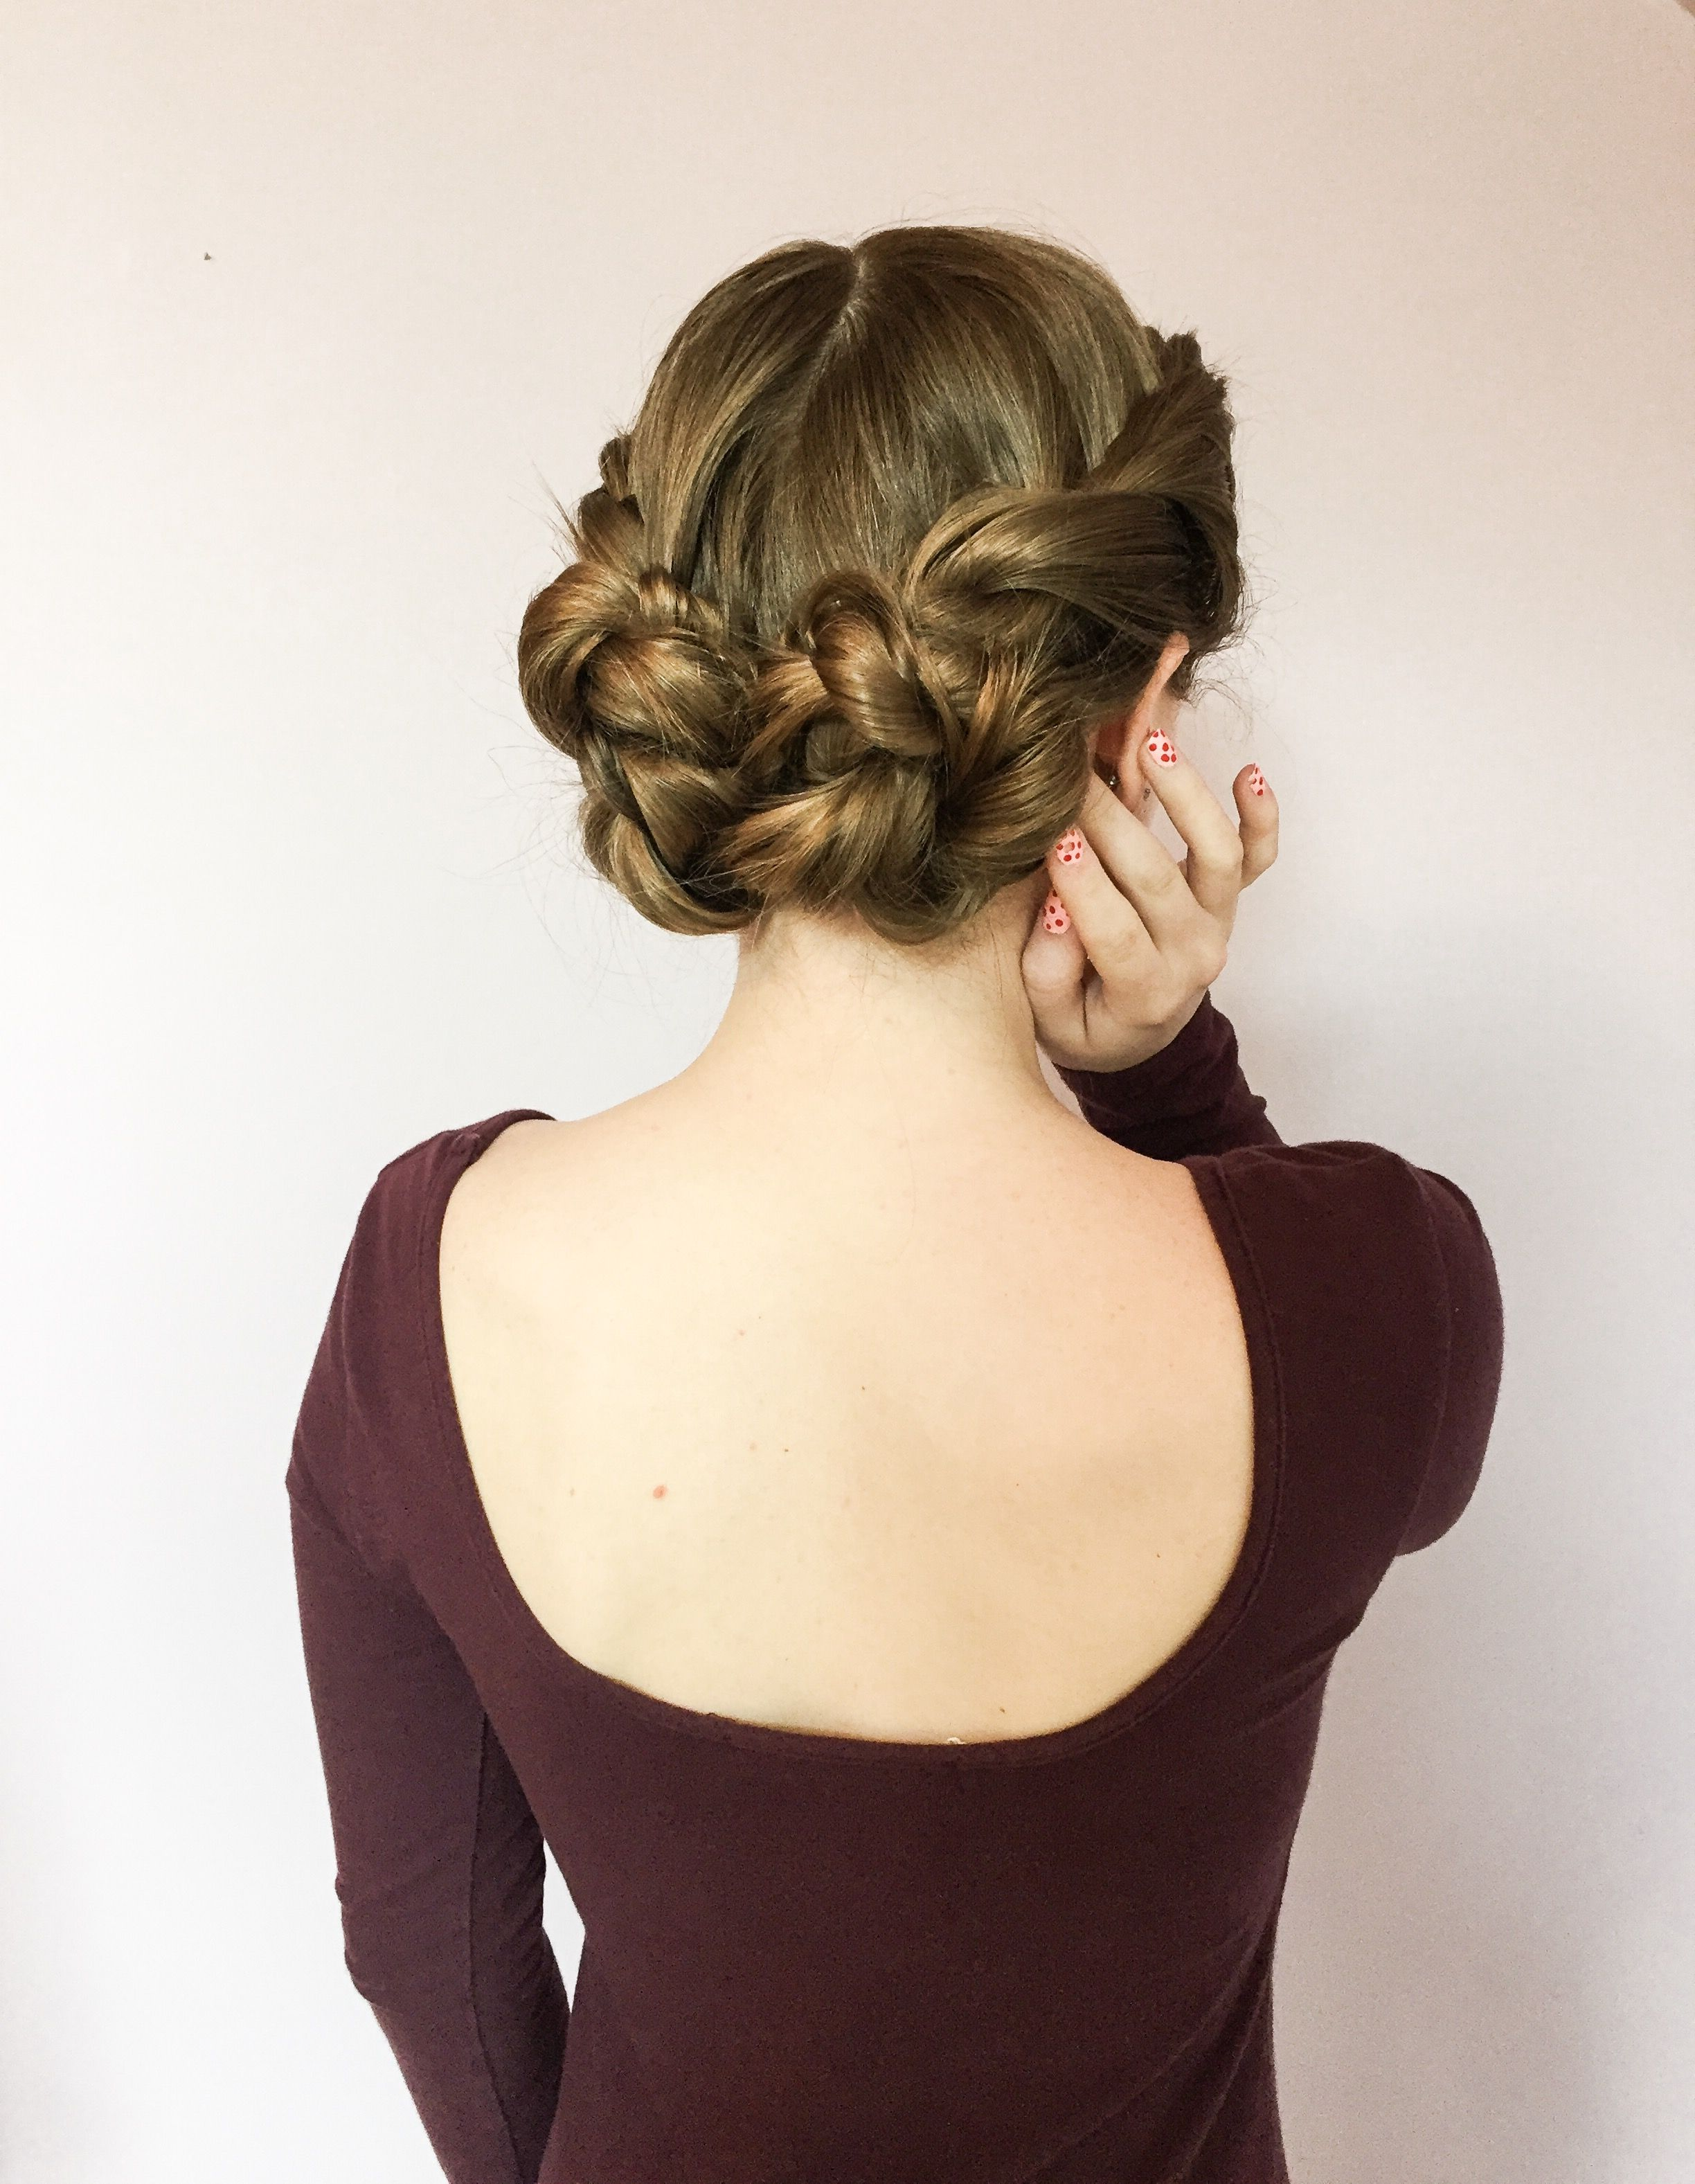 Double Twist Low Buns Updo Hairstyle Easy Bun Hairstyles Natural Bun Hairstyles Low Bun Hairstyles